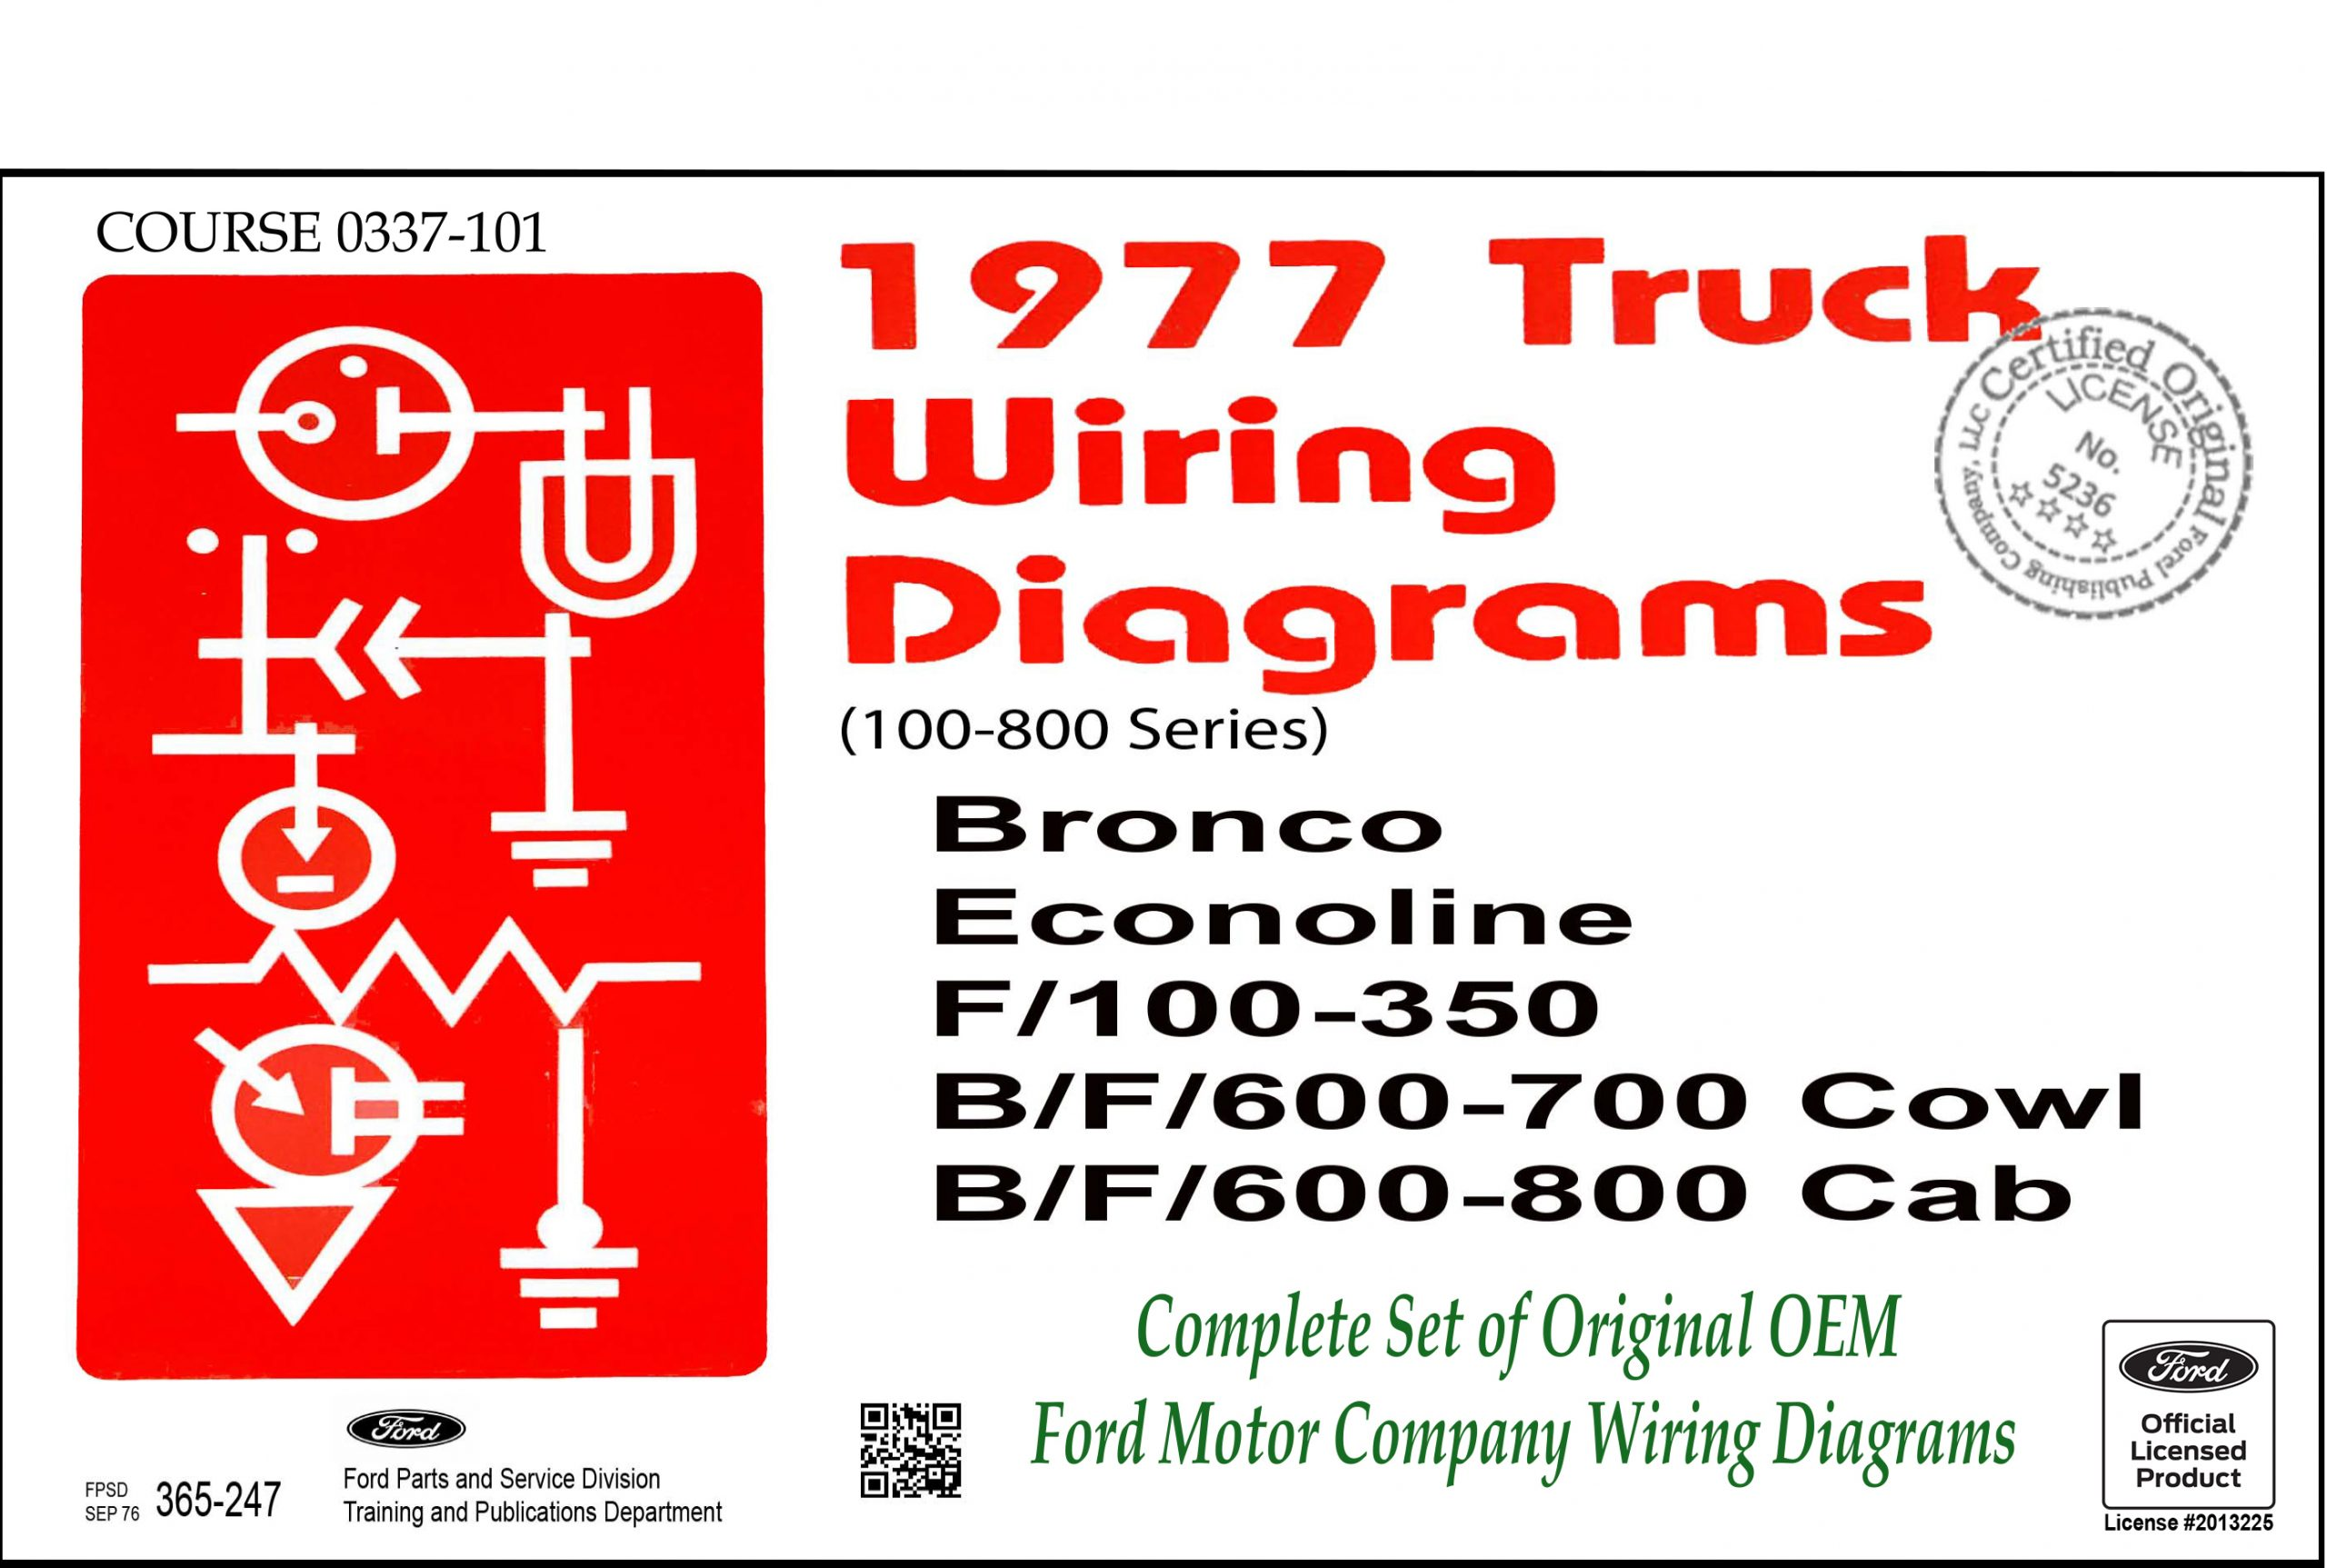 1977 Ford Truck Wiring Diagrams (100-800) - Fordmanuals.com